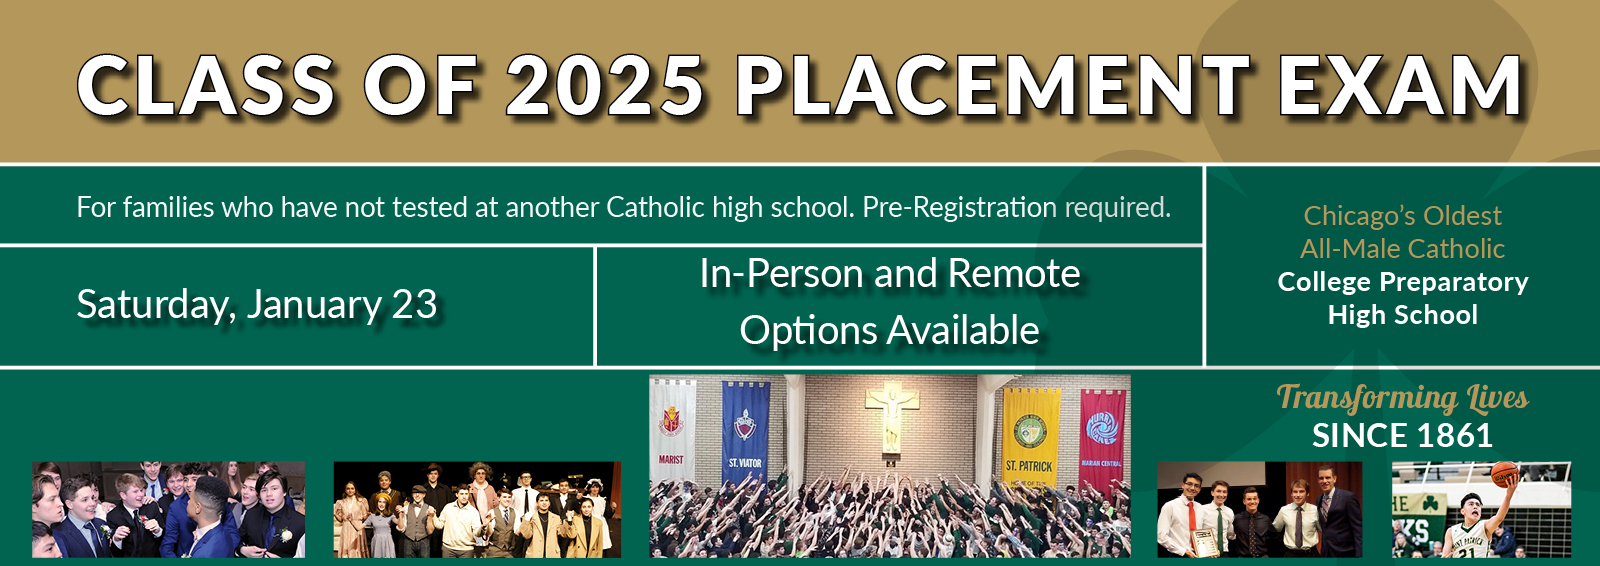 Placement Exam MakeUp One Date Home Page Banner